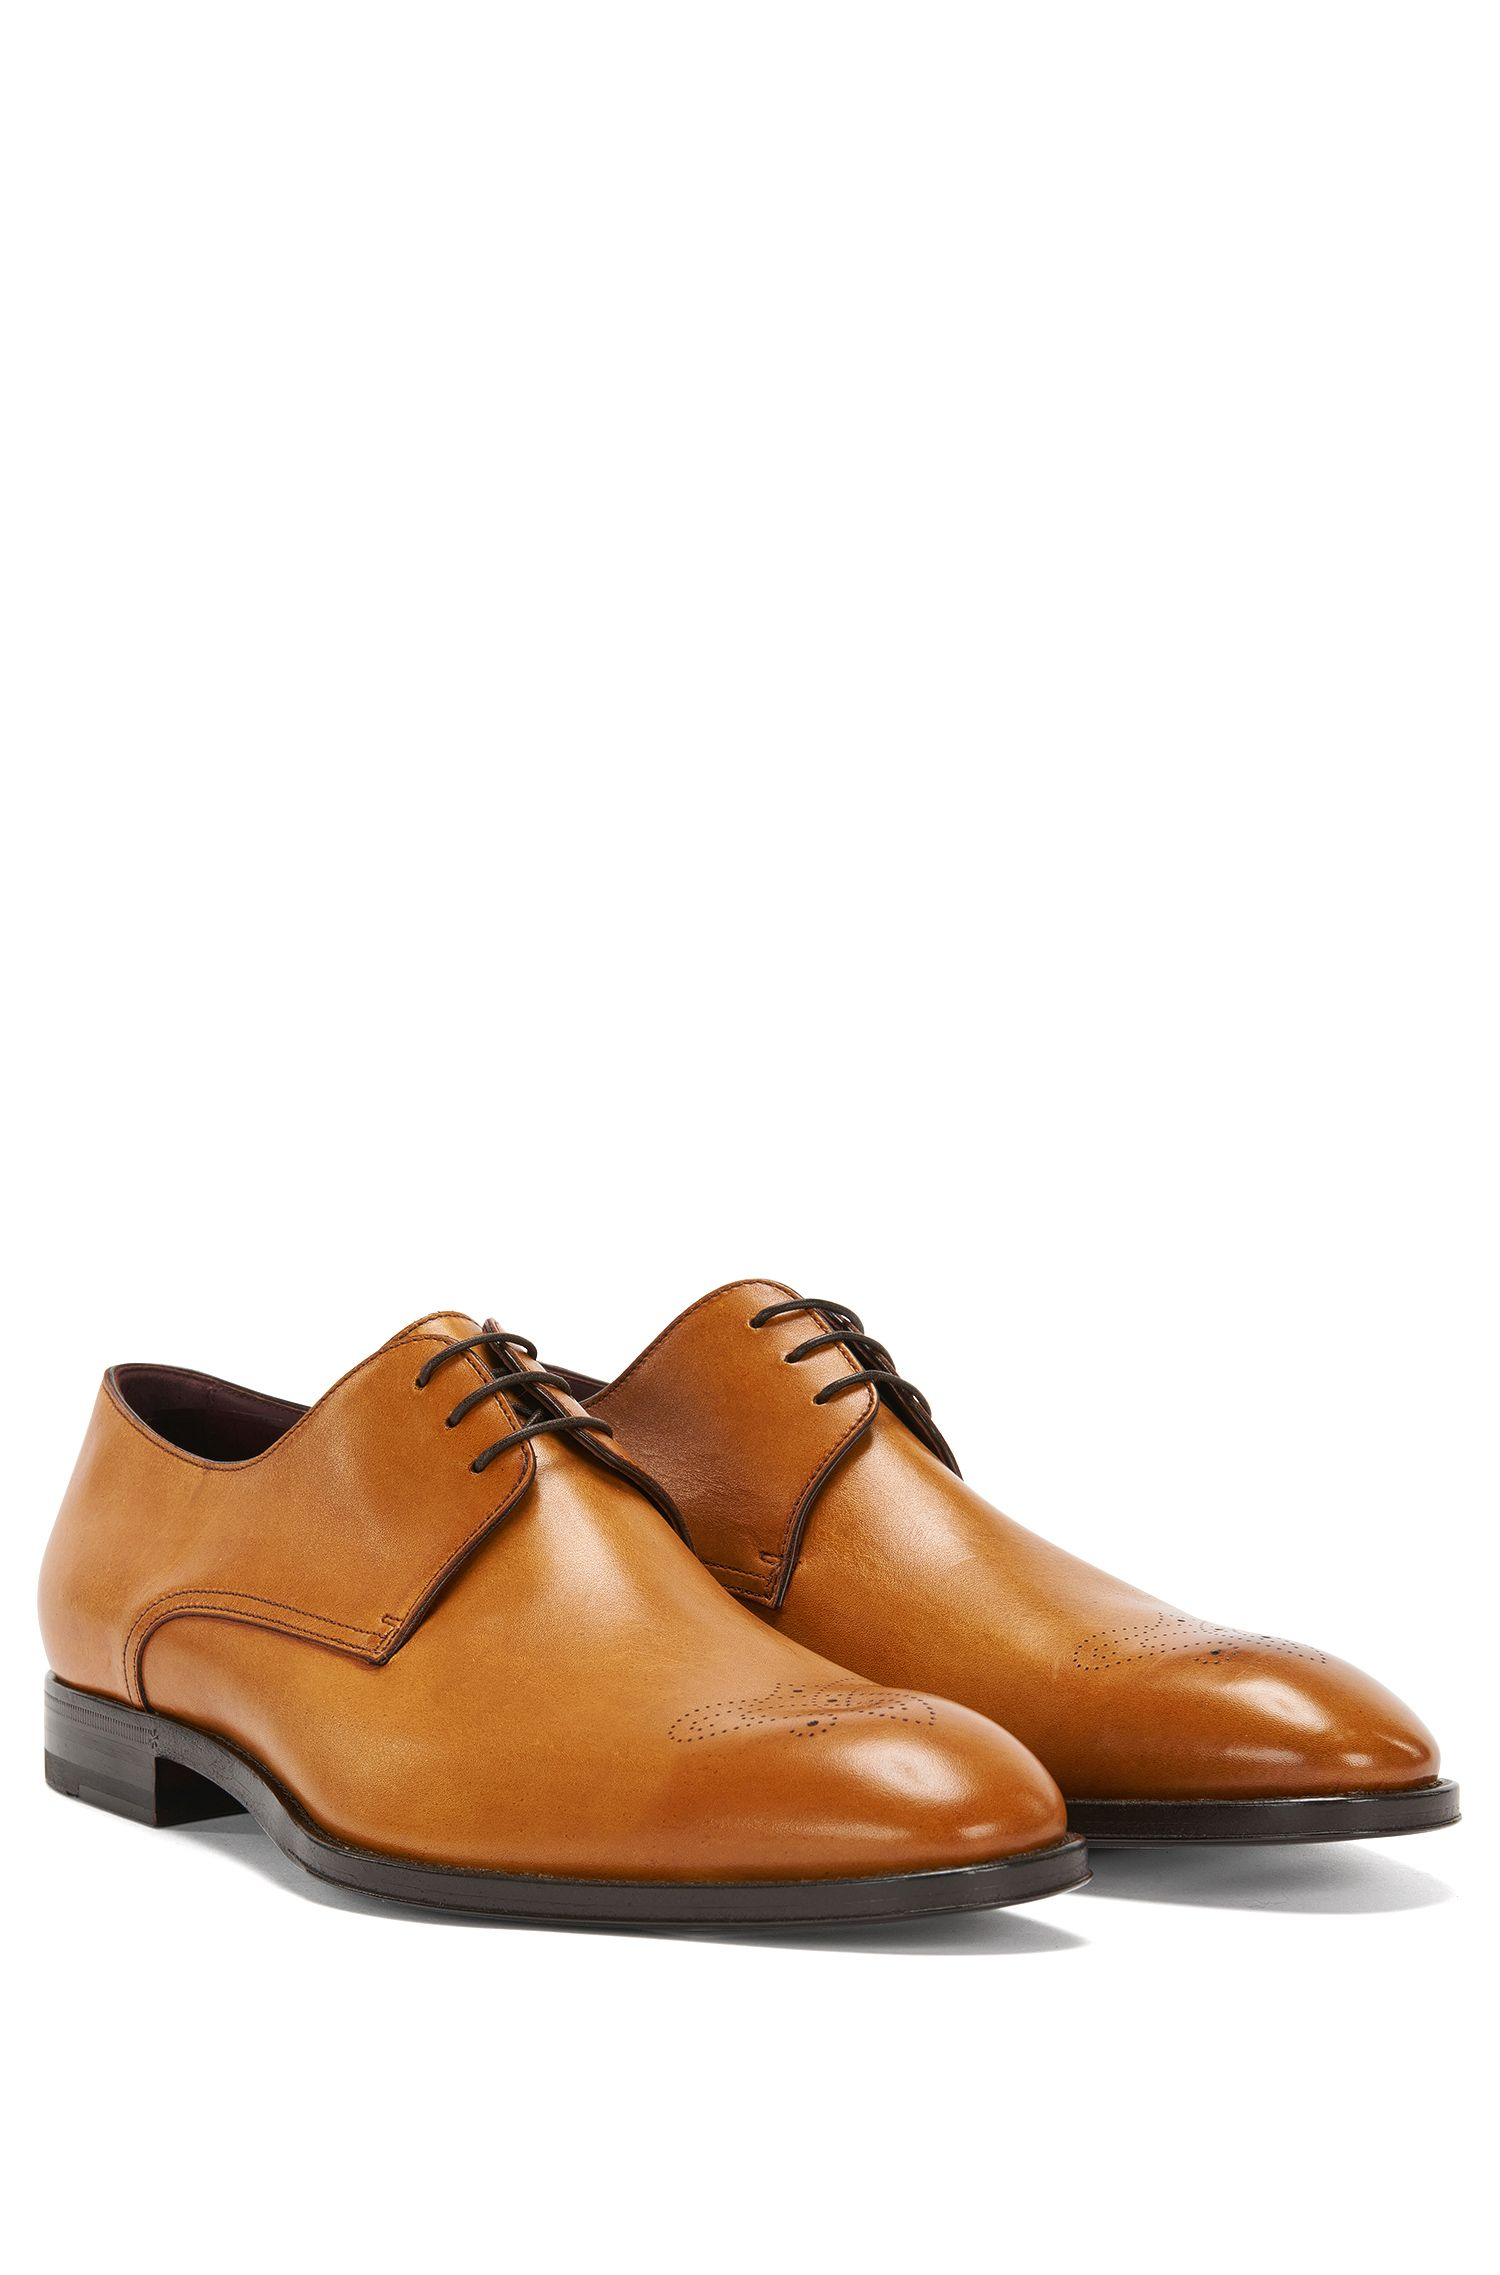 'T-Legend Derb Itls' | Italian Calfskin Broguge Dress Shoes